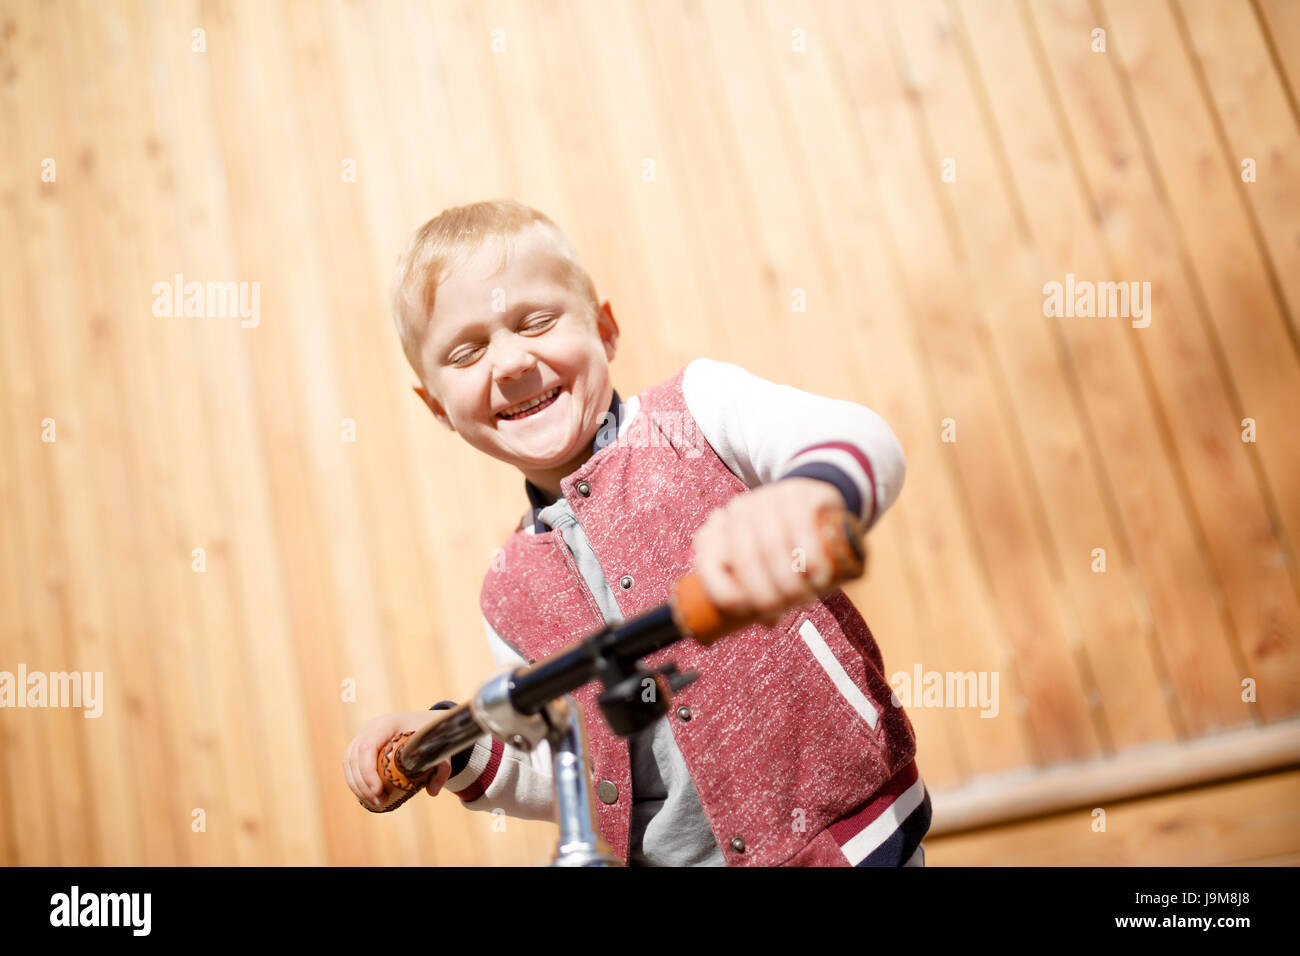 Image of boy with cycle - Stock Image